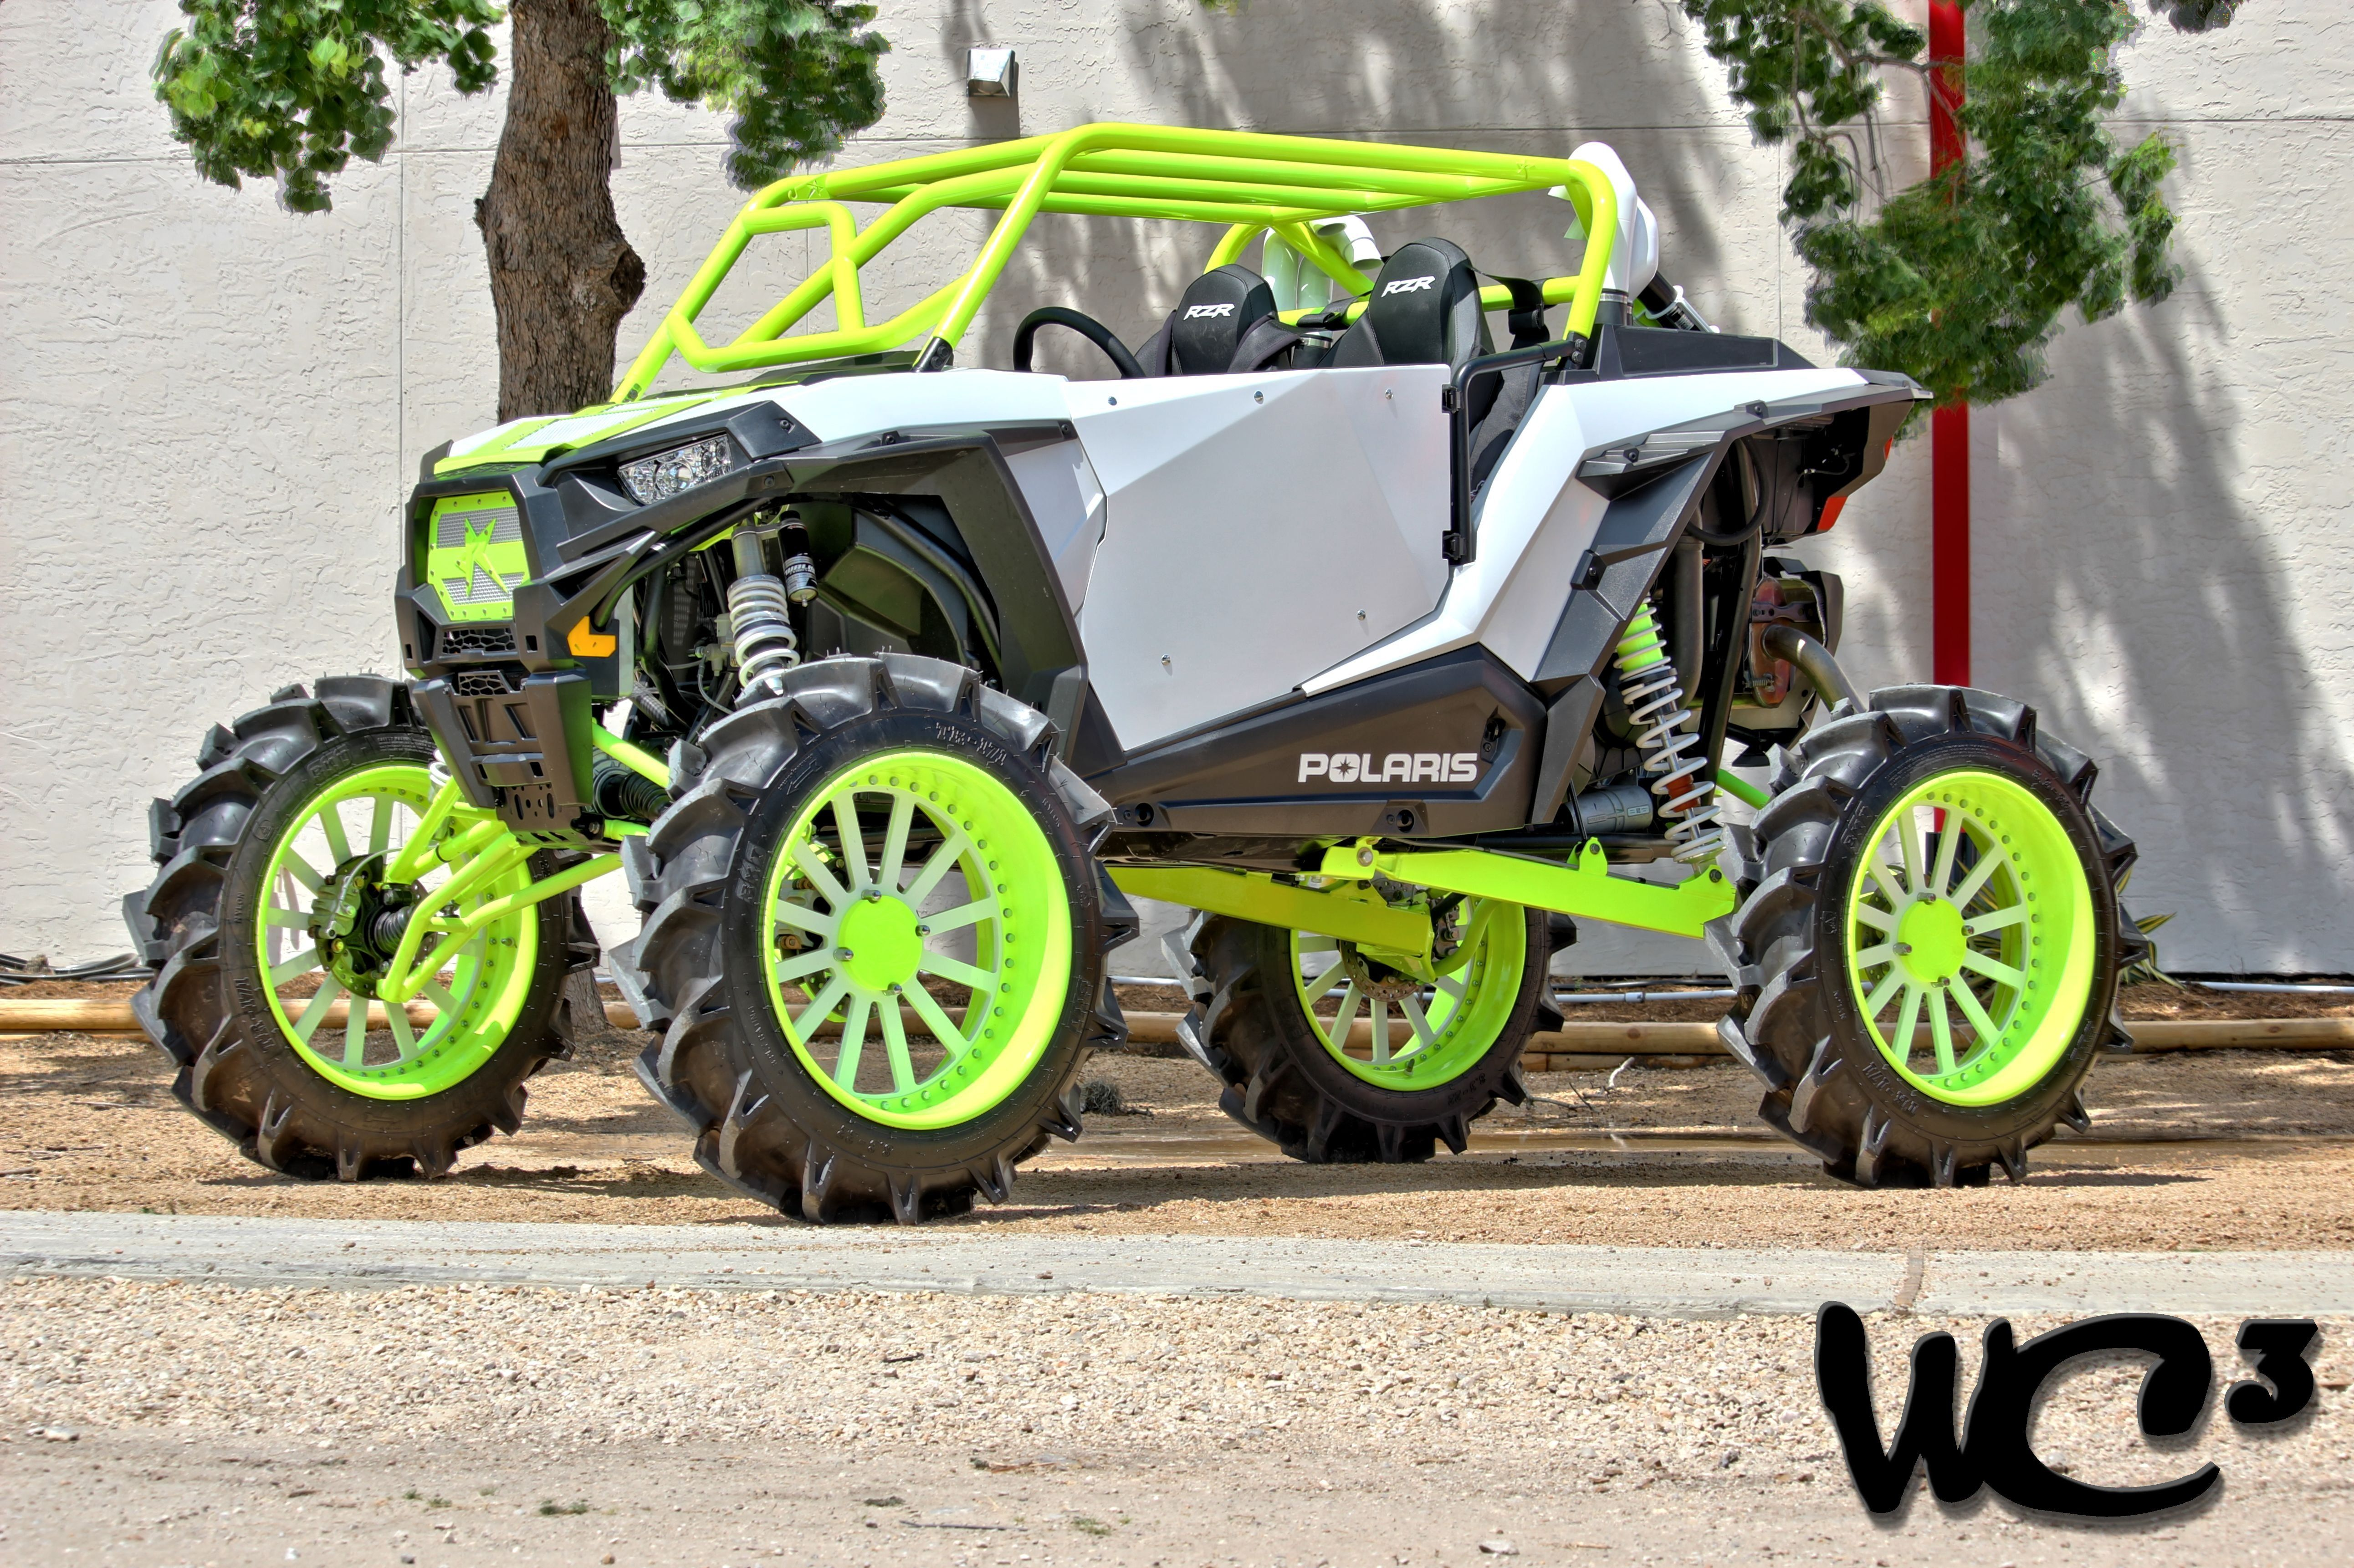 Toxic A Custom Polaris Rzr Xp 1000 By The Crew Over At Wc3 Custom Wheels And Roll Cage On An 8 Lift Wc3 Woodscyclecountry Polari With Images Rzr Atv Quads Sand Rail